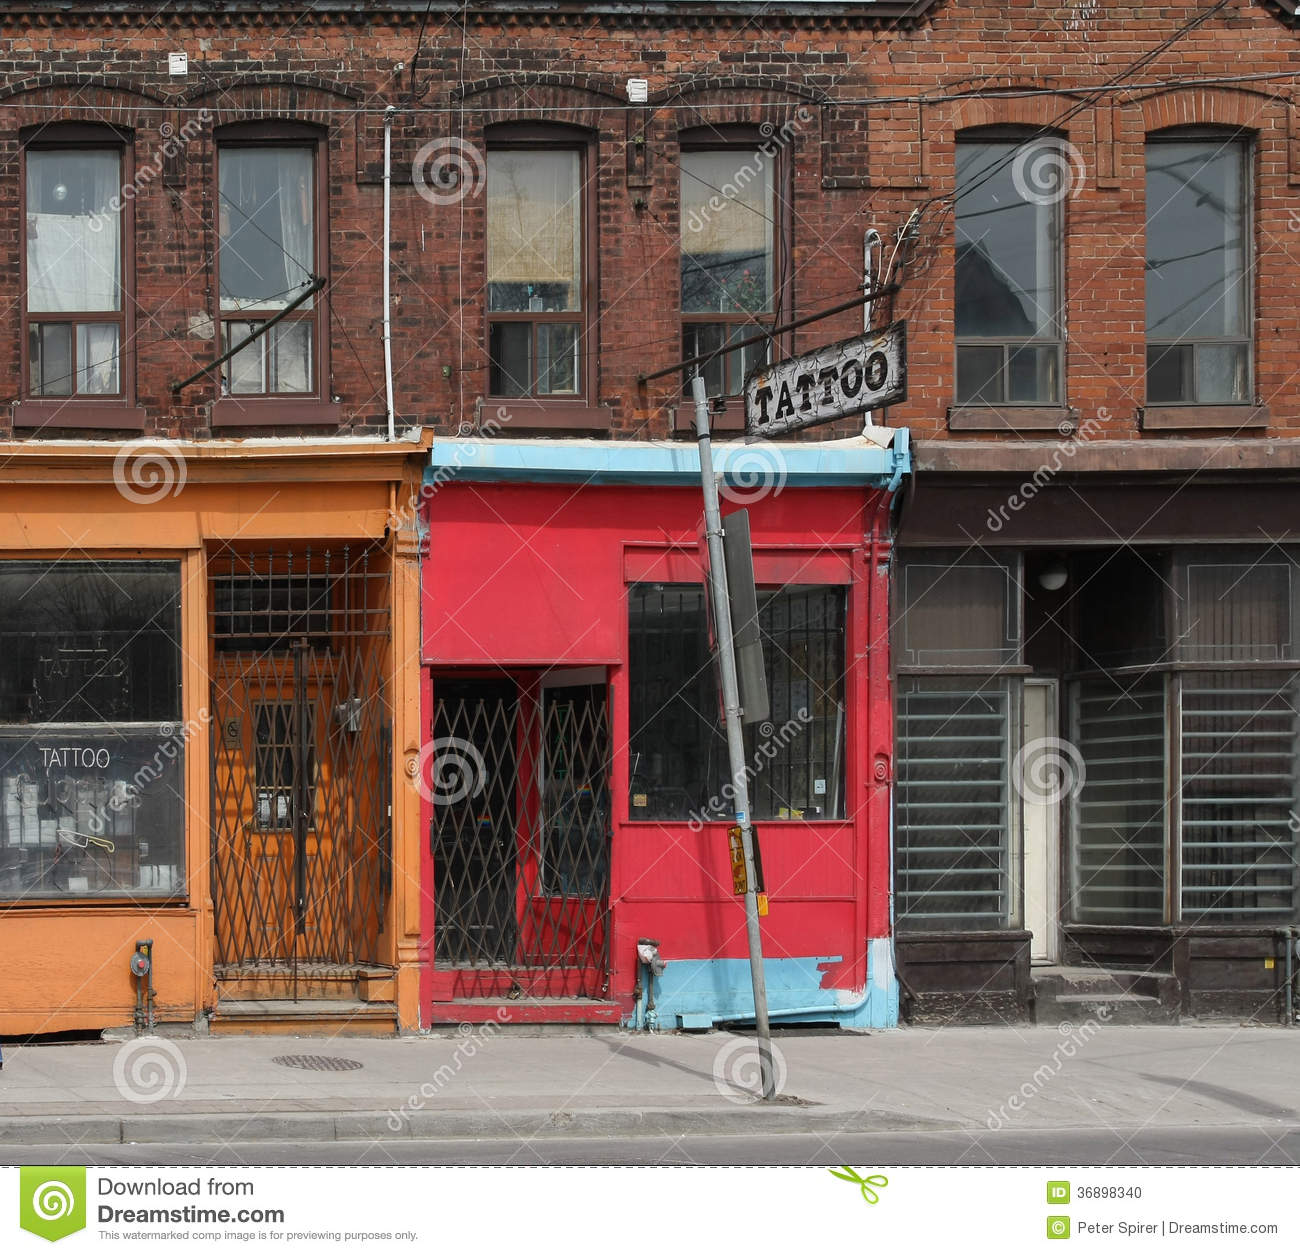 Old tattoo shop stock photo. Image of tattoo, shop, exterior - 36898340